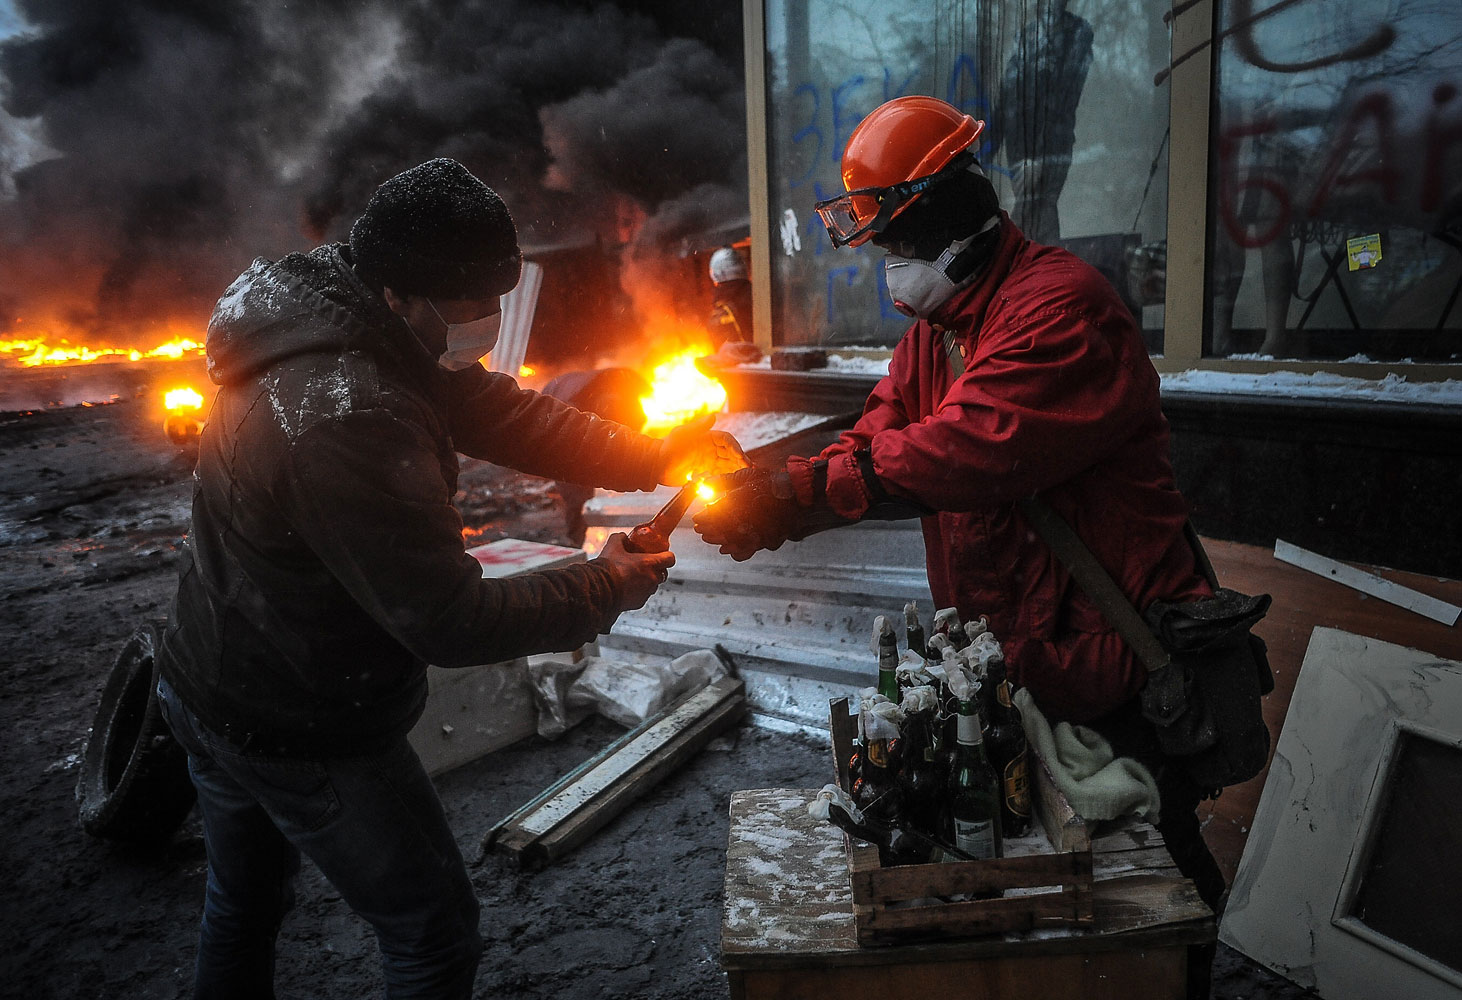 Pro-European protesters with a Molotov cocktail in Kiev, Jan. 22, 2014.